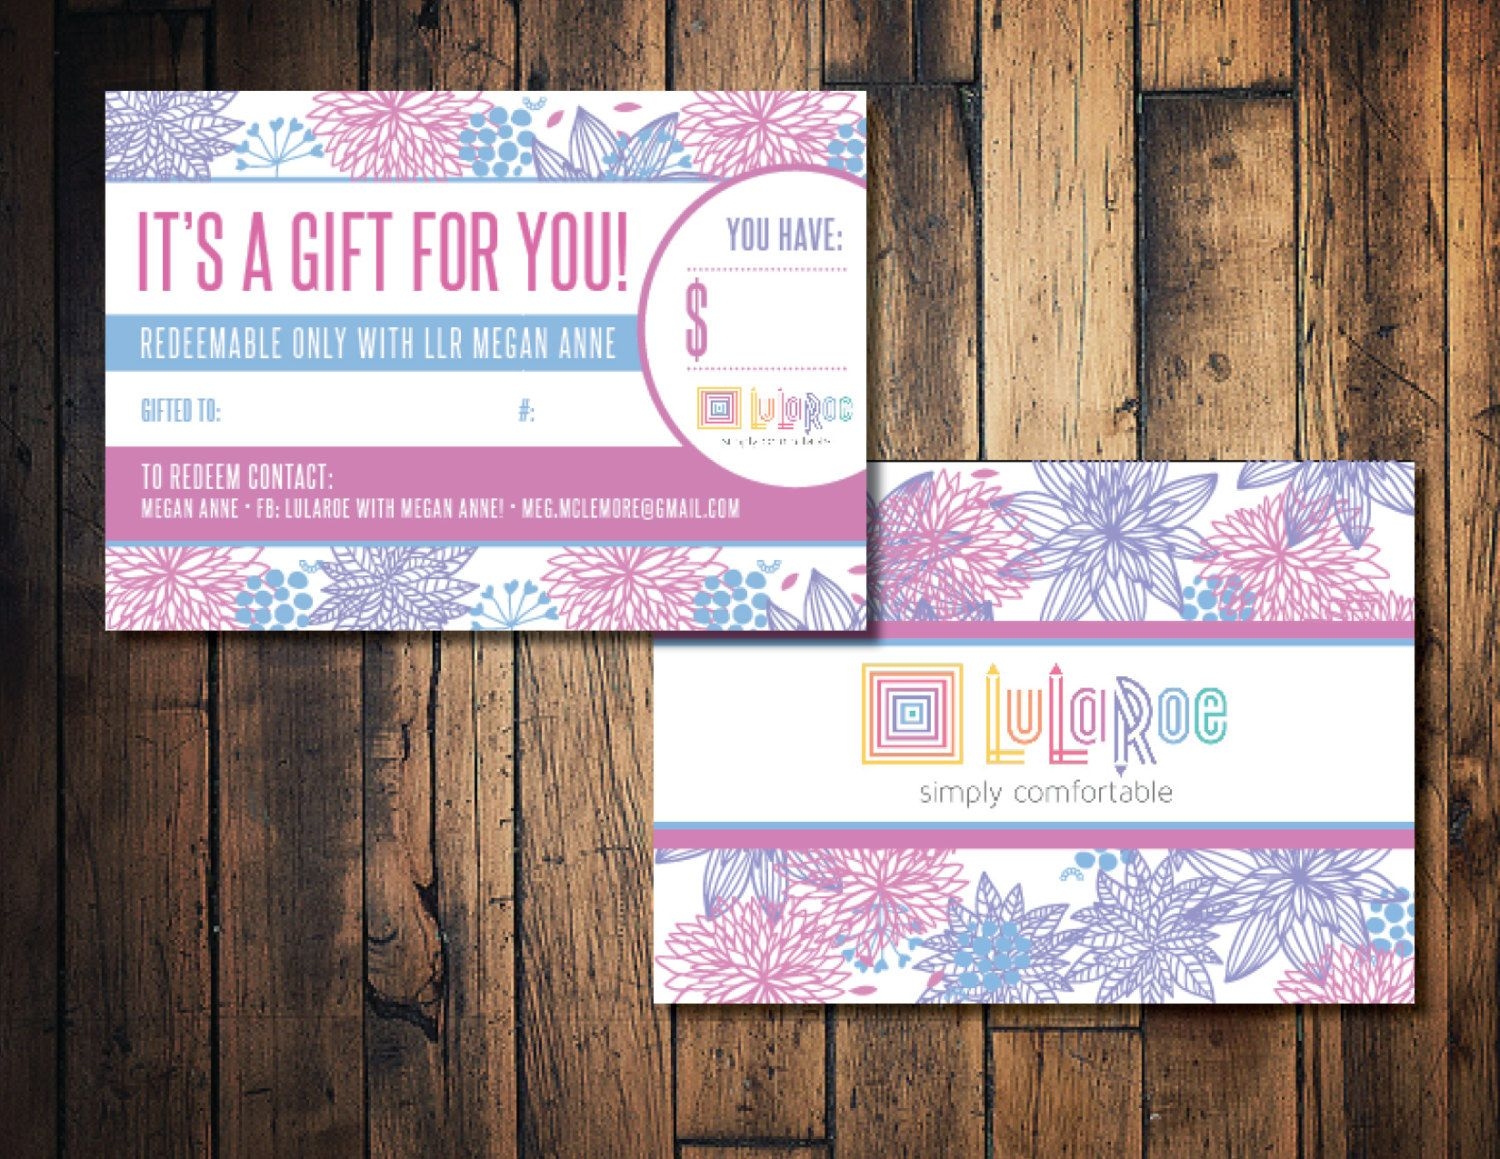 Floral LulaRoe Gift Card, LulaRoe Gift Certificate Card, LulaRoe Marketing  Card By TheWrightInvite On